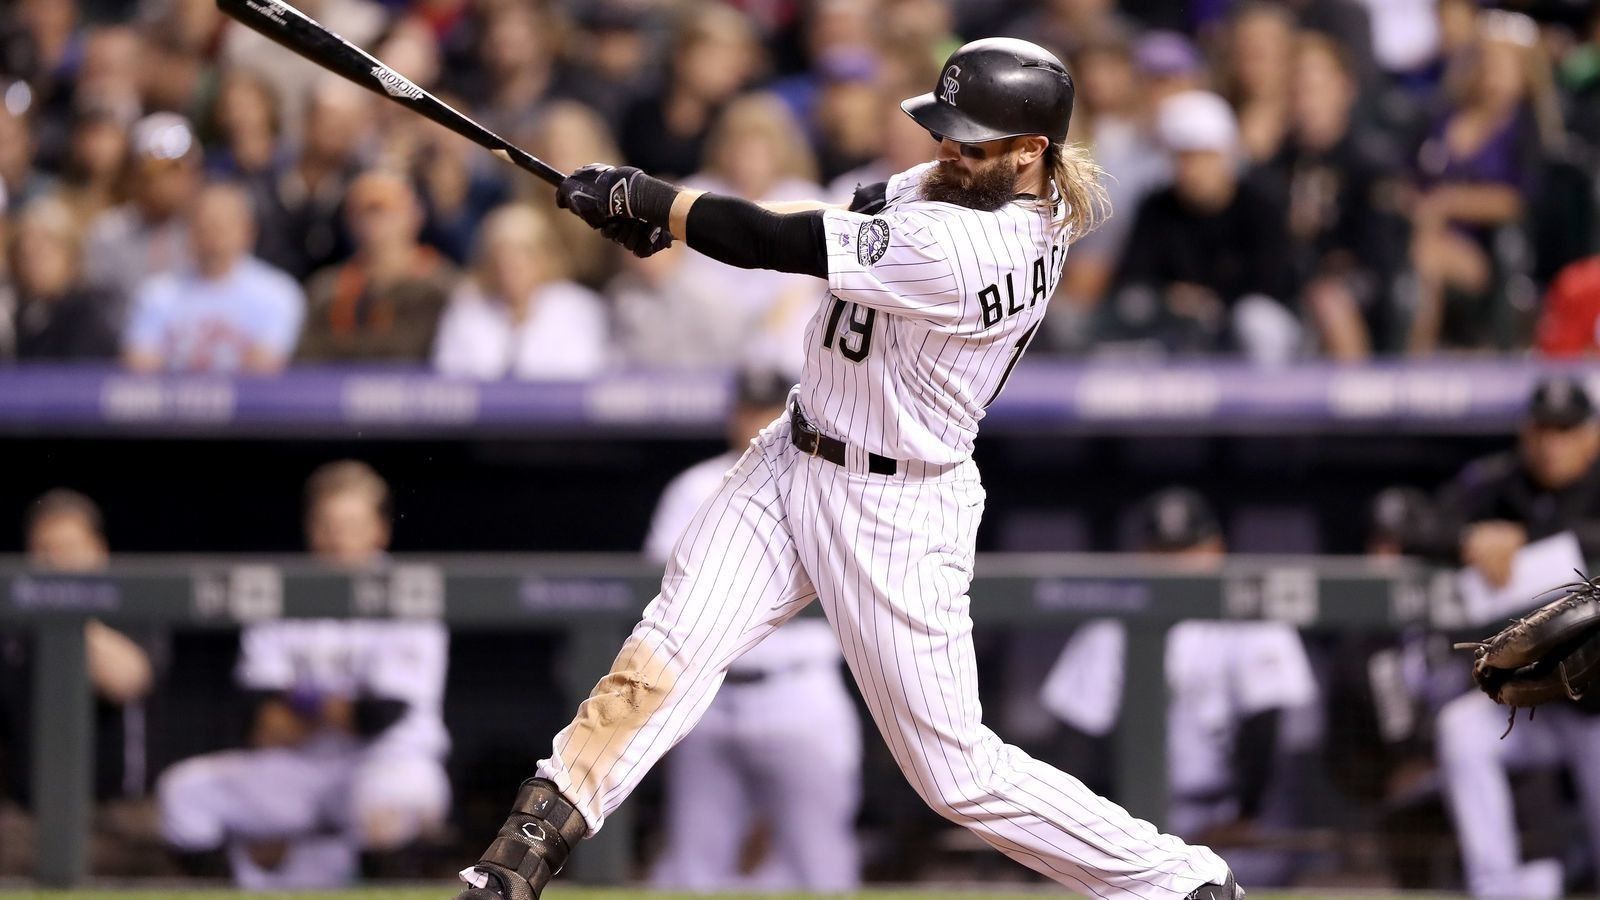 Colorado Rockies' Charlie Blackmon is the best active center fielder